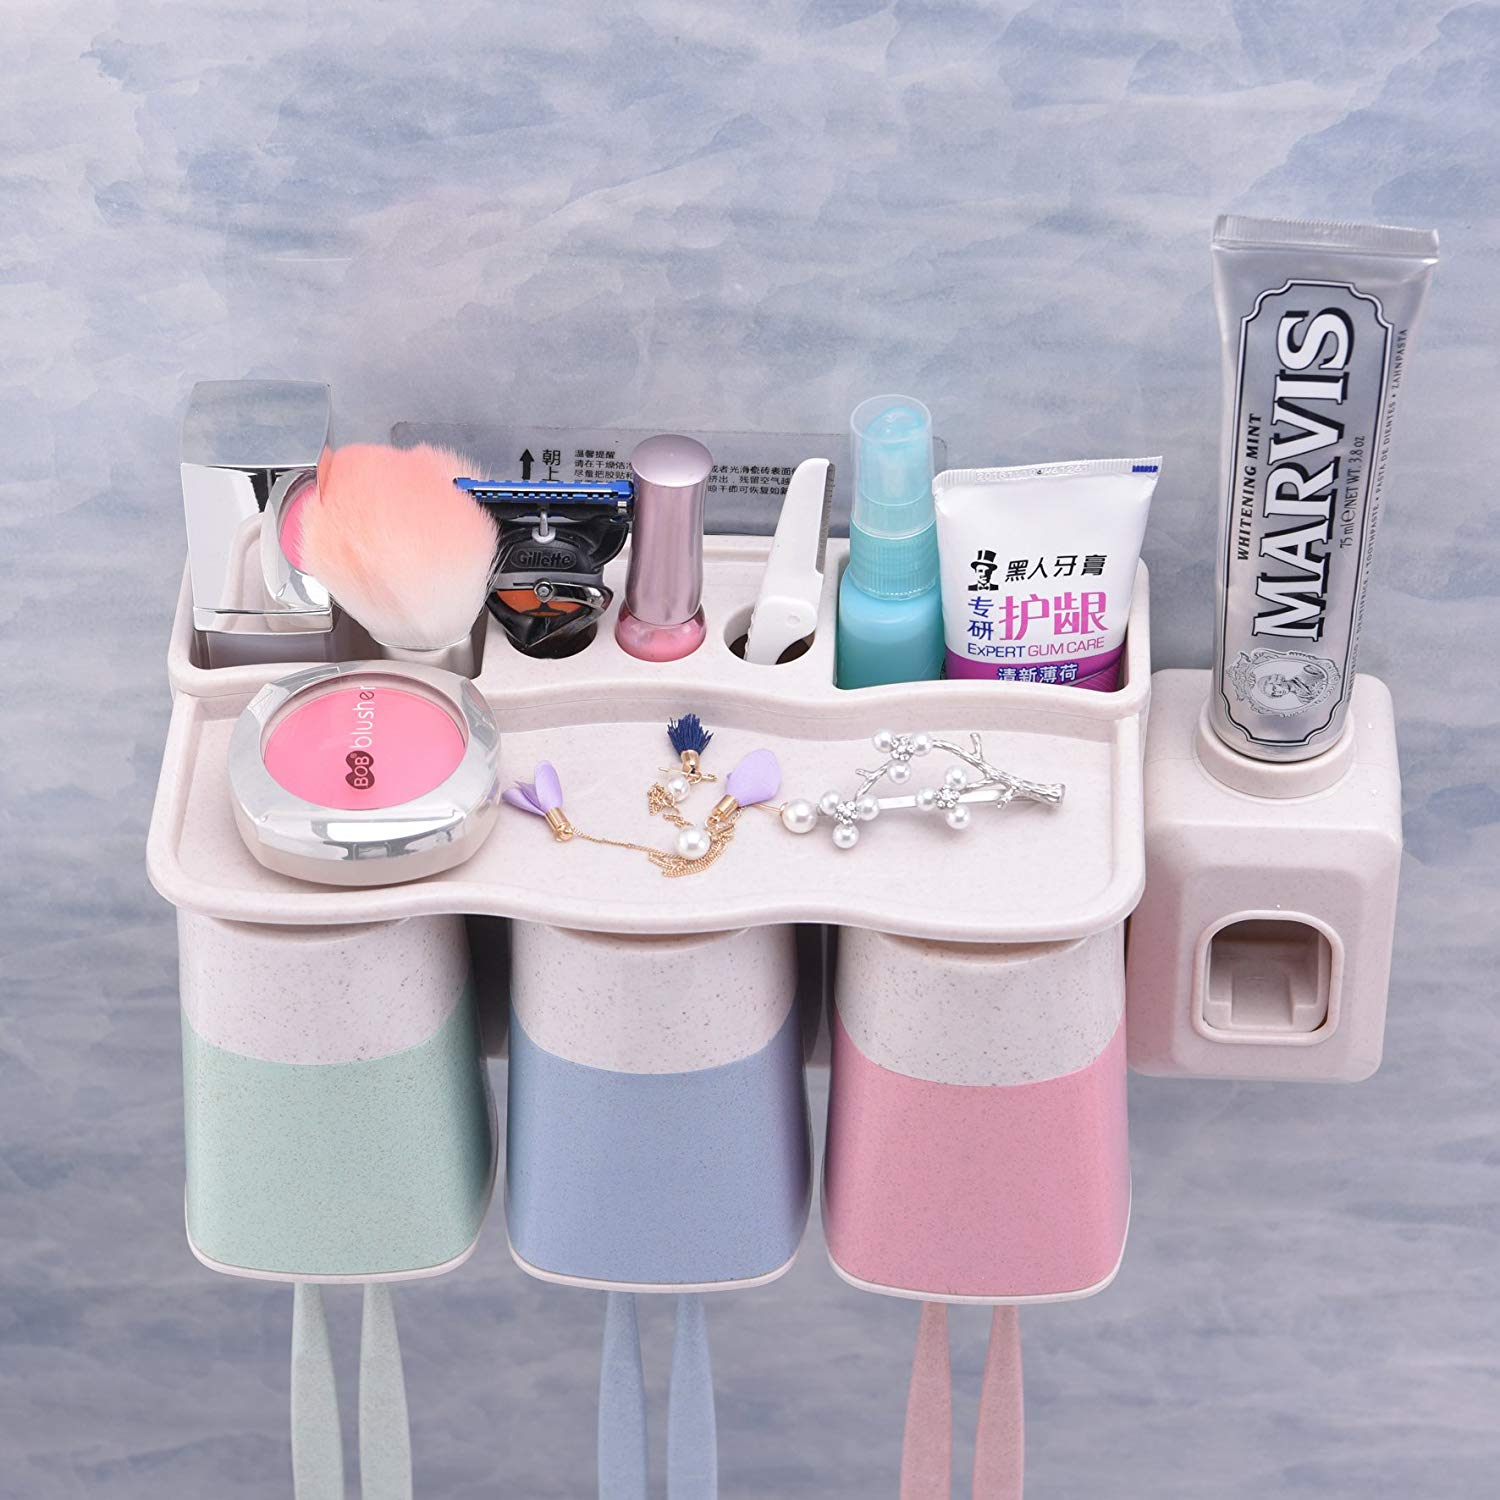 MOISO Automatic Toothpaste Dispenser